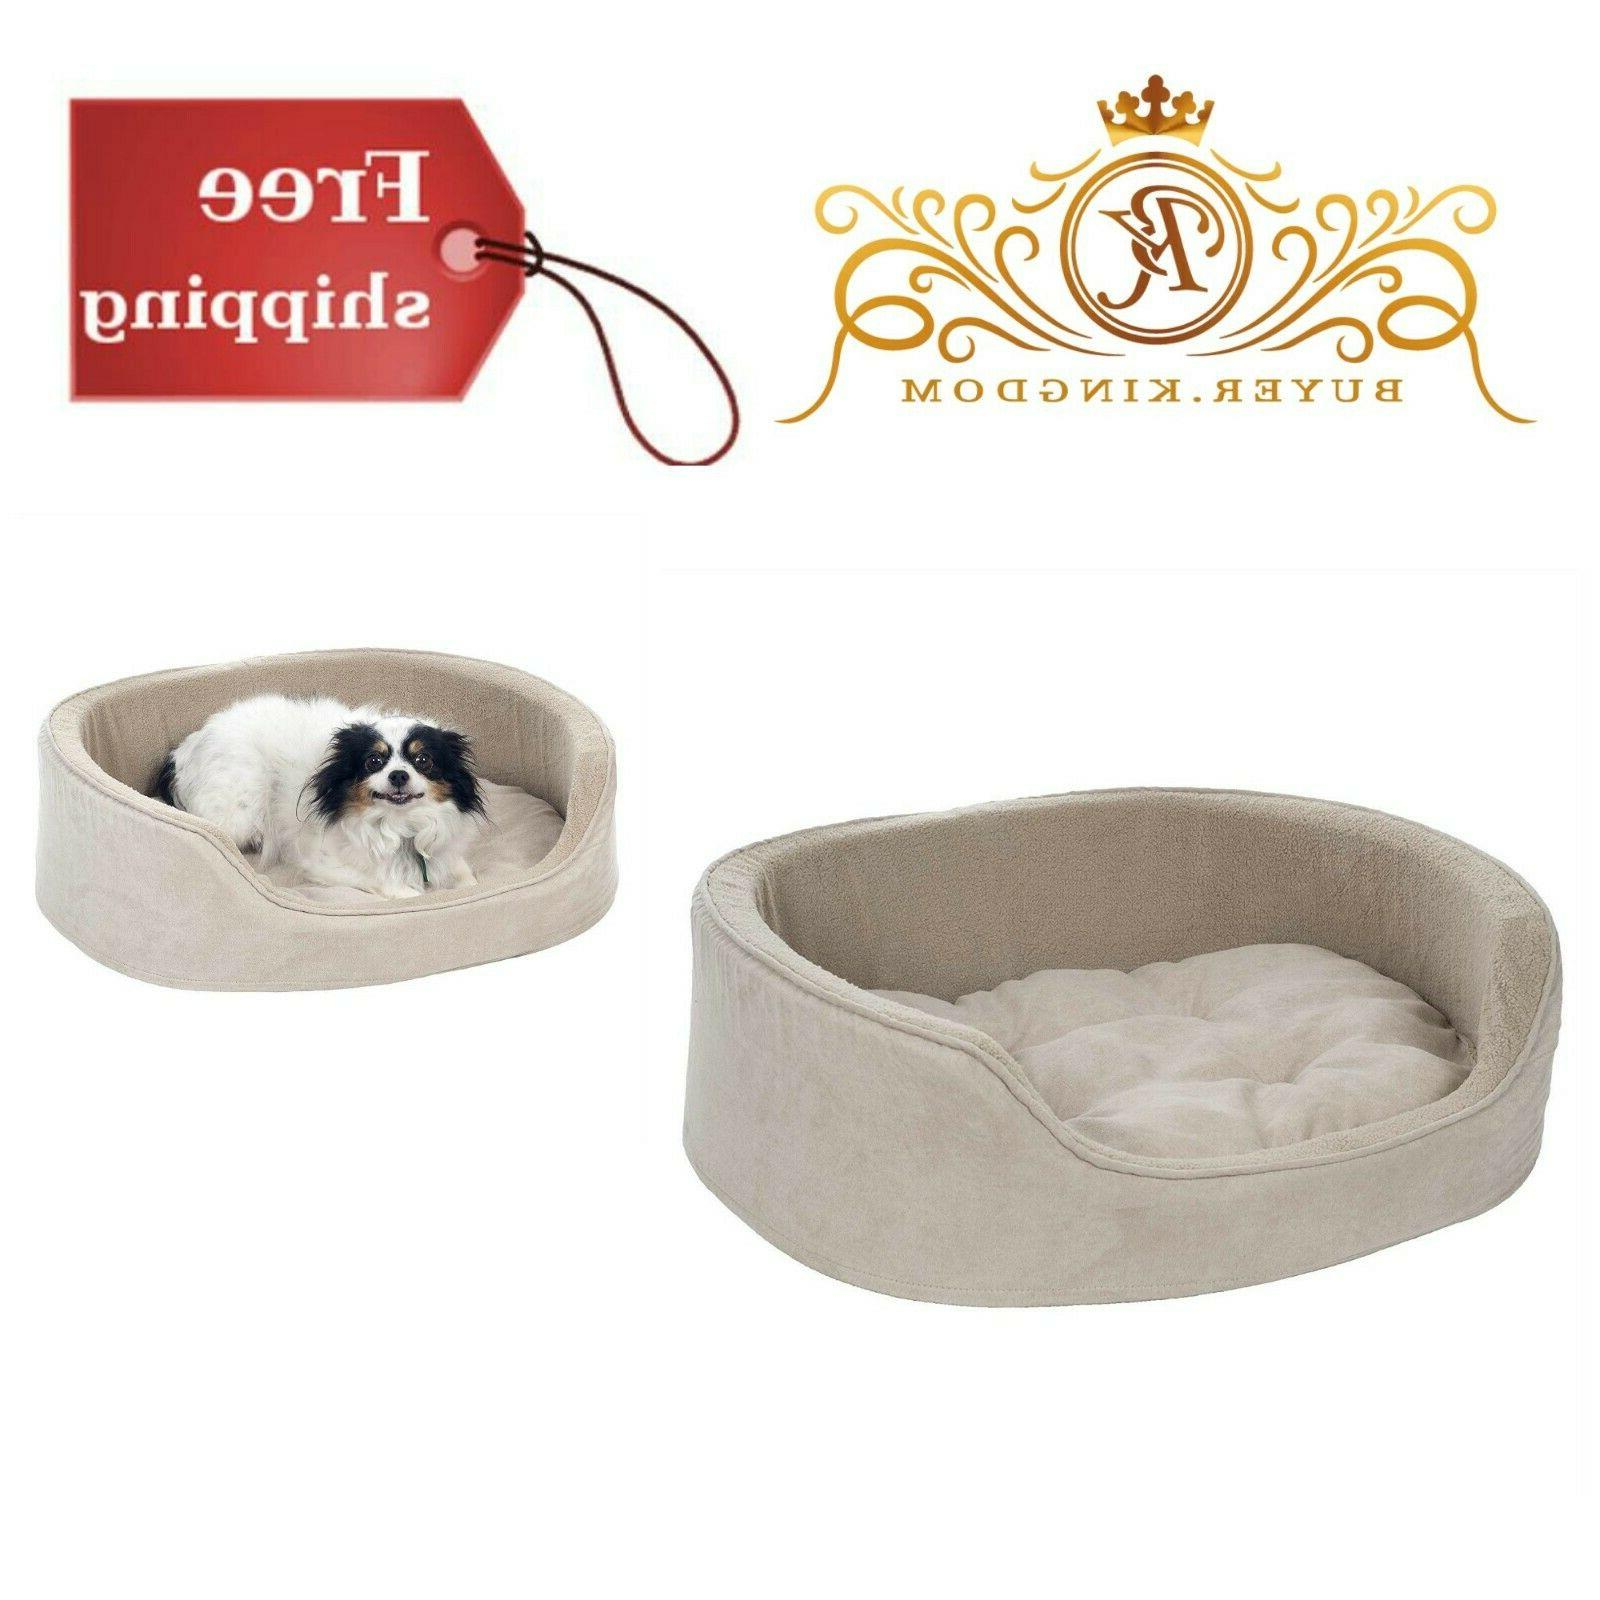 pet beds round for small medium dogs